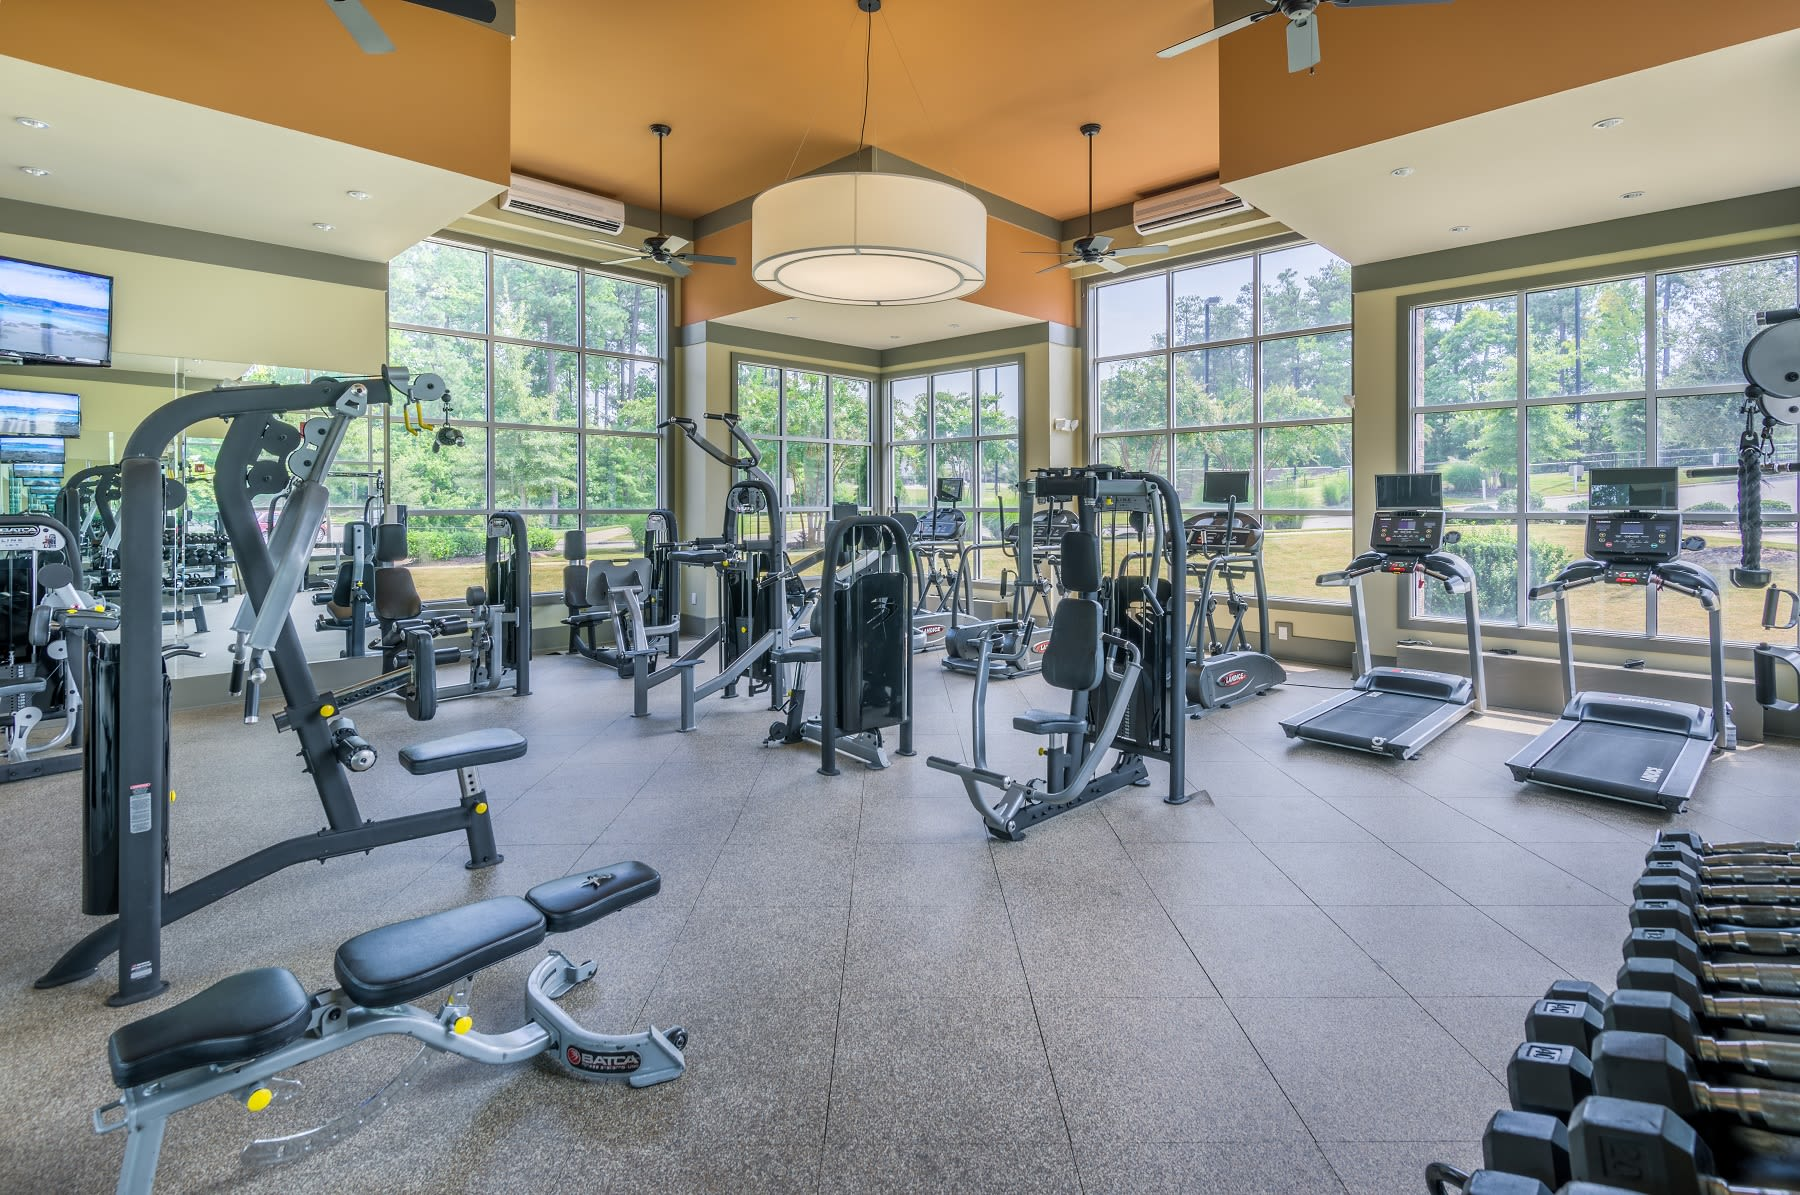 Our apartments in Raleigh, North Carolina showcase a state of the art fitness center